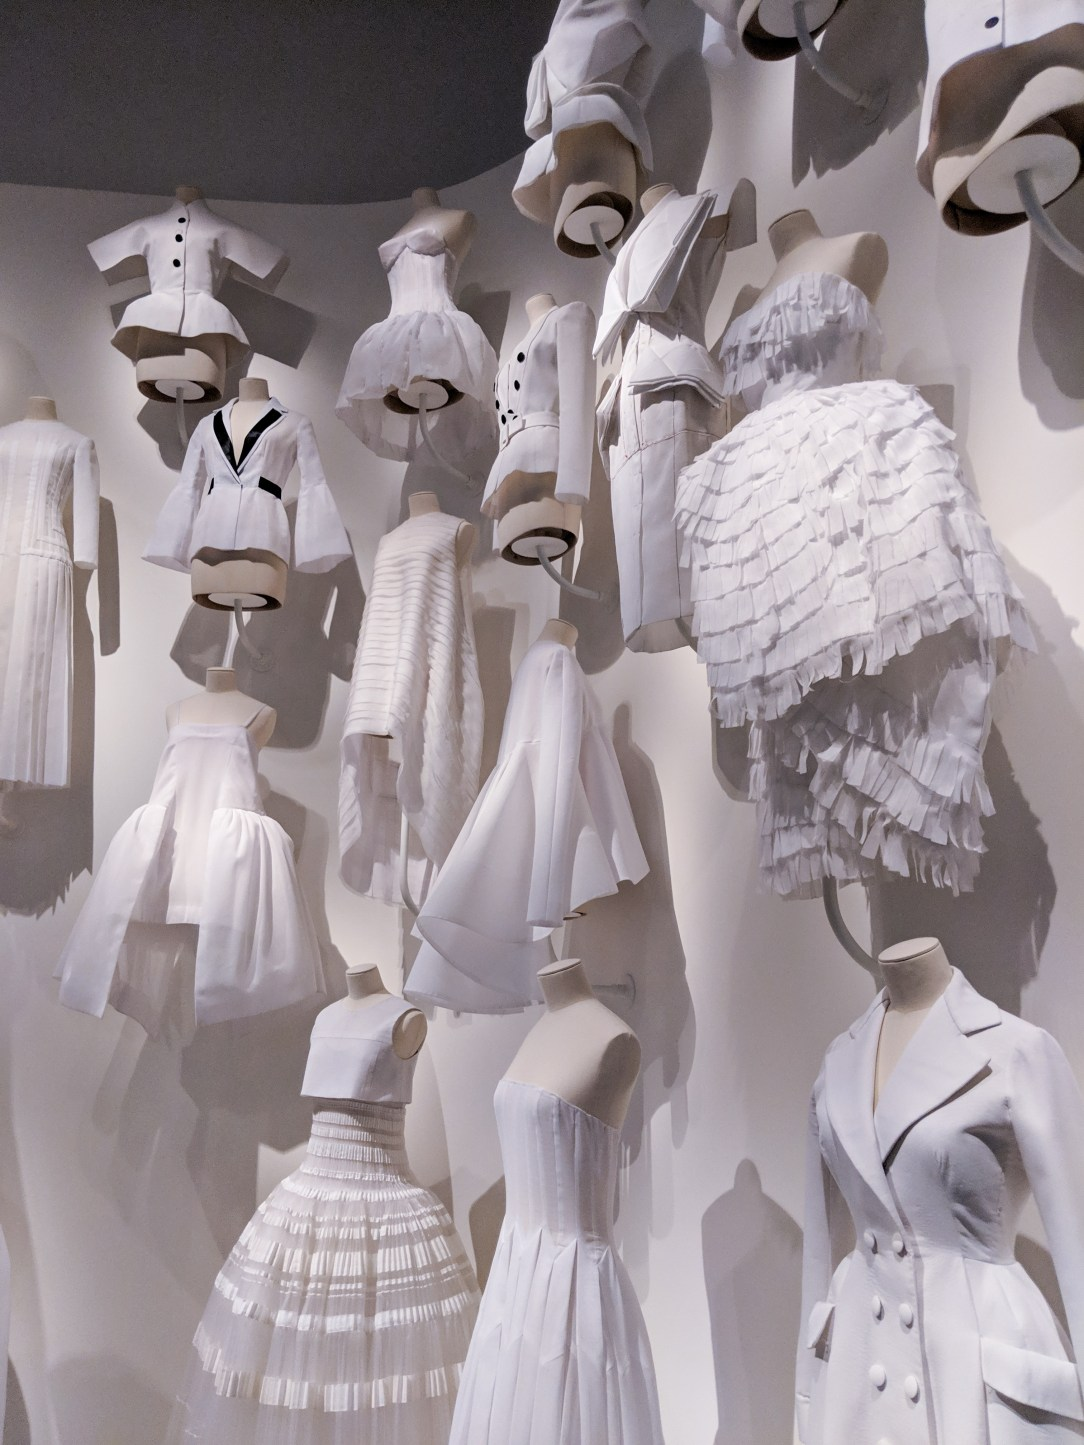 Dior white gowns